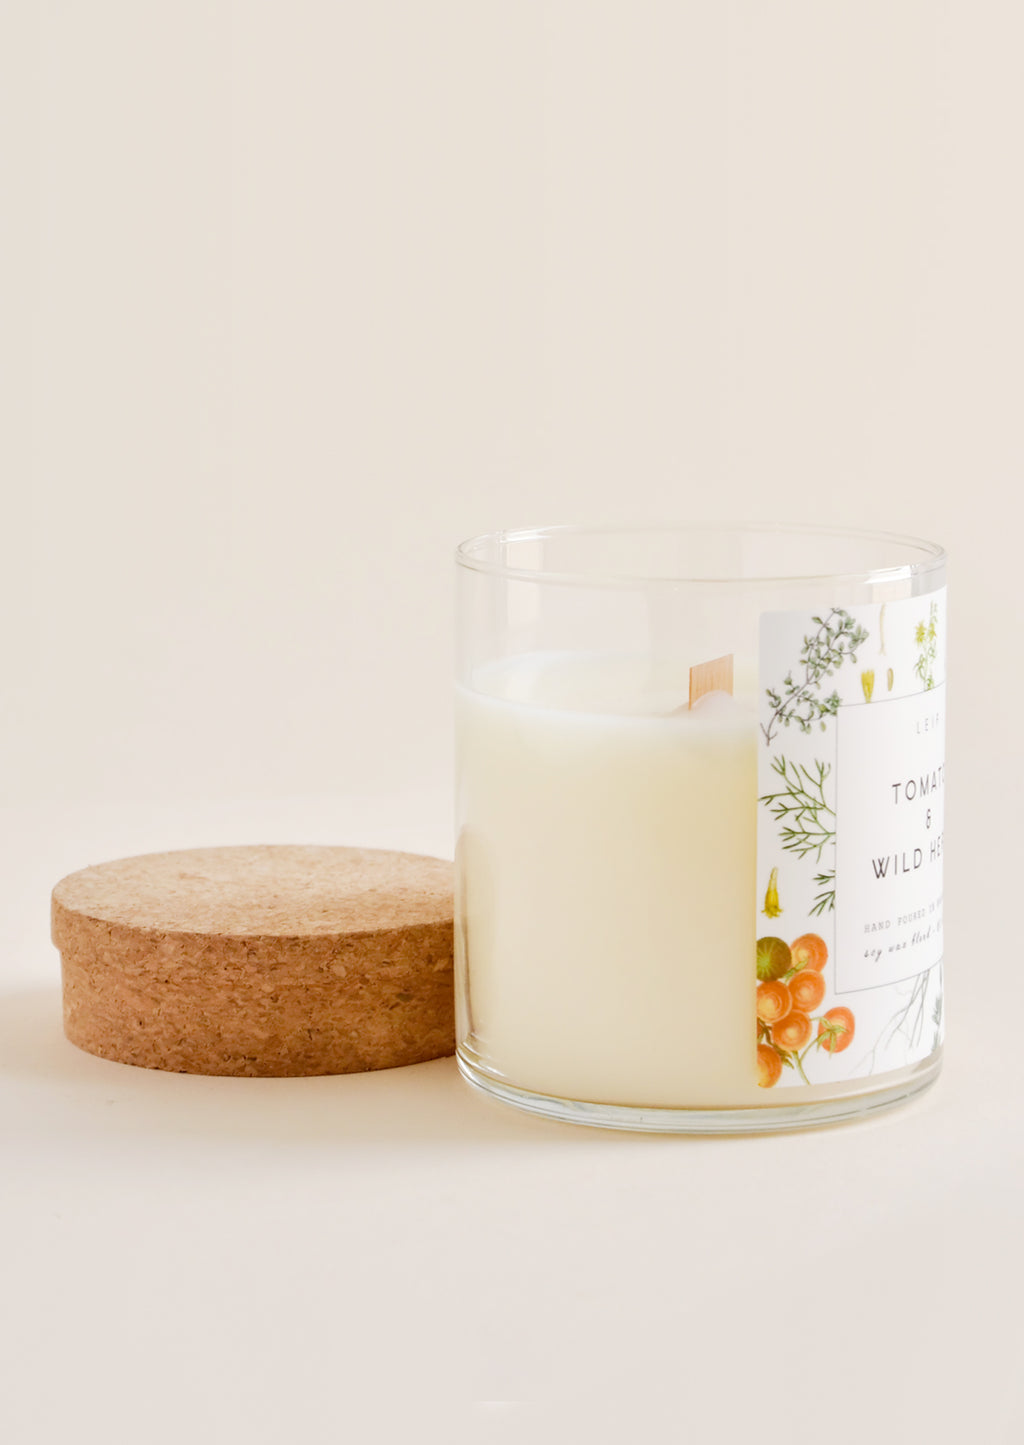 3: A glass candle with botanical label and wooden wick sits next to its cork lid.